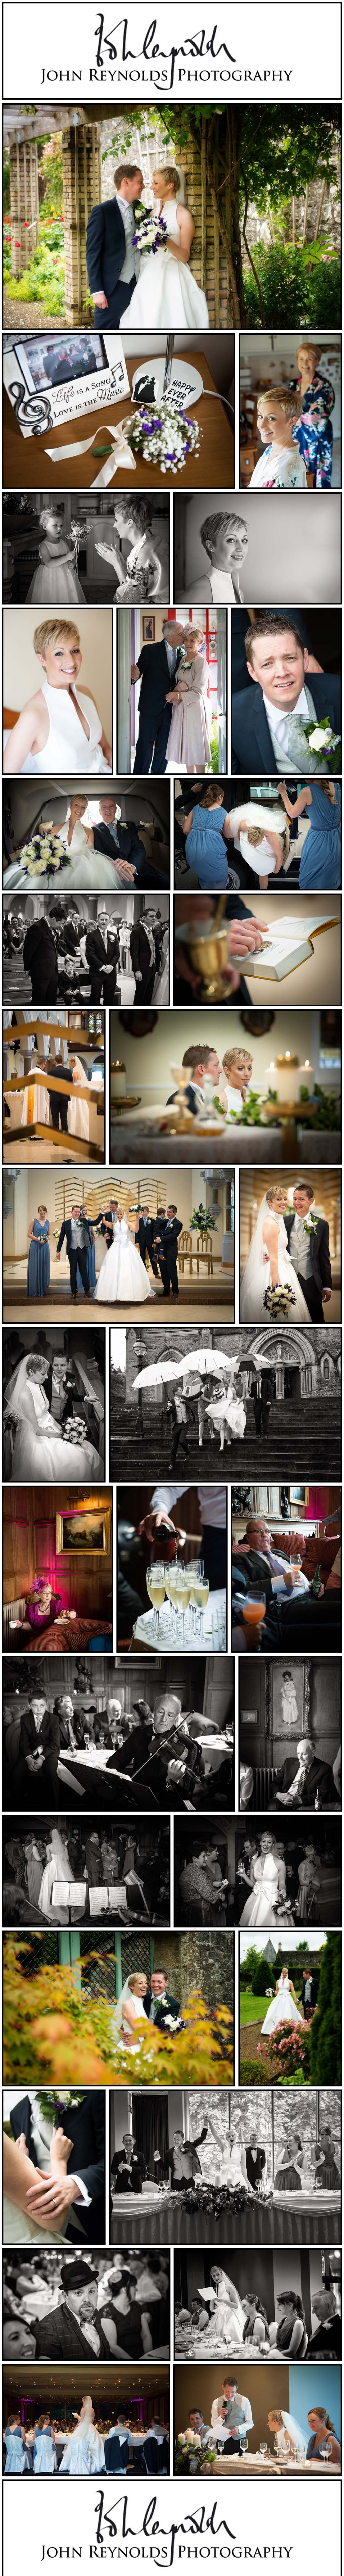 Blog Collage-Louise & John